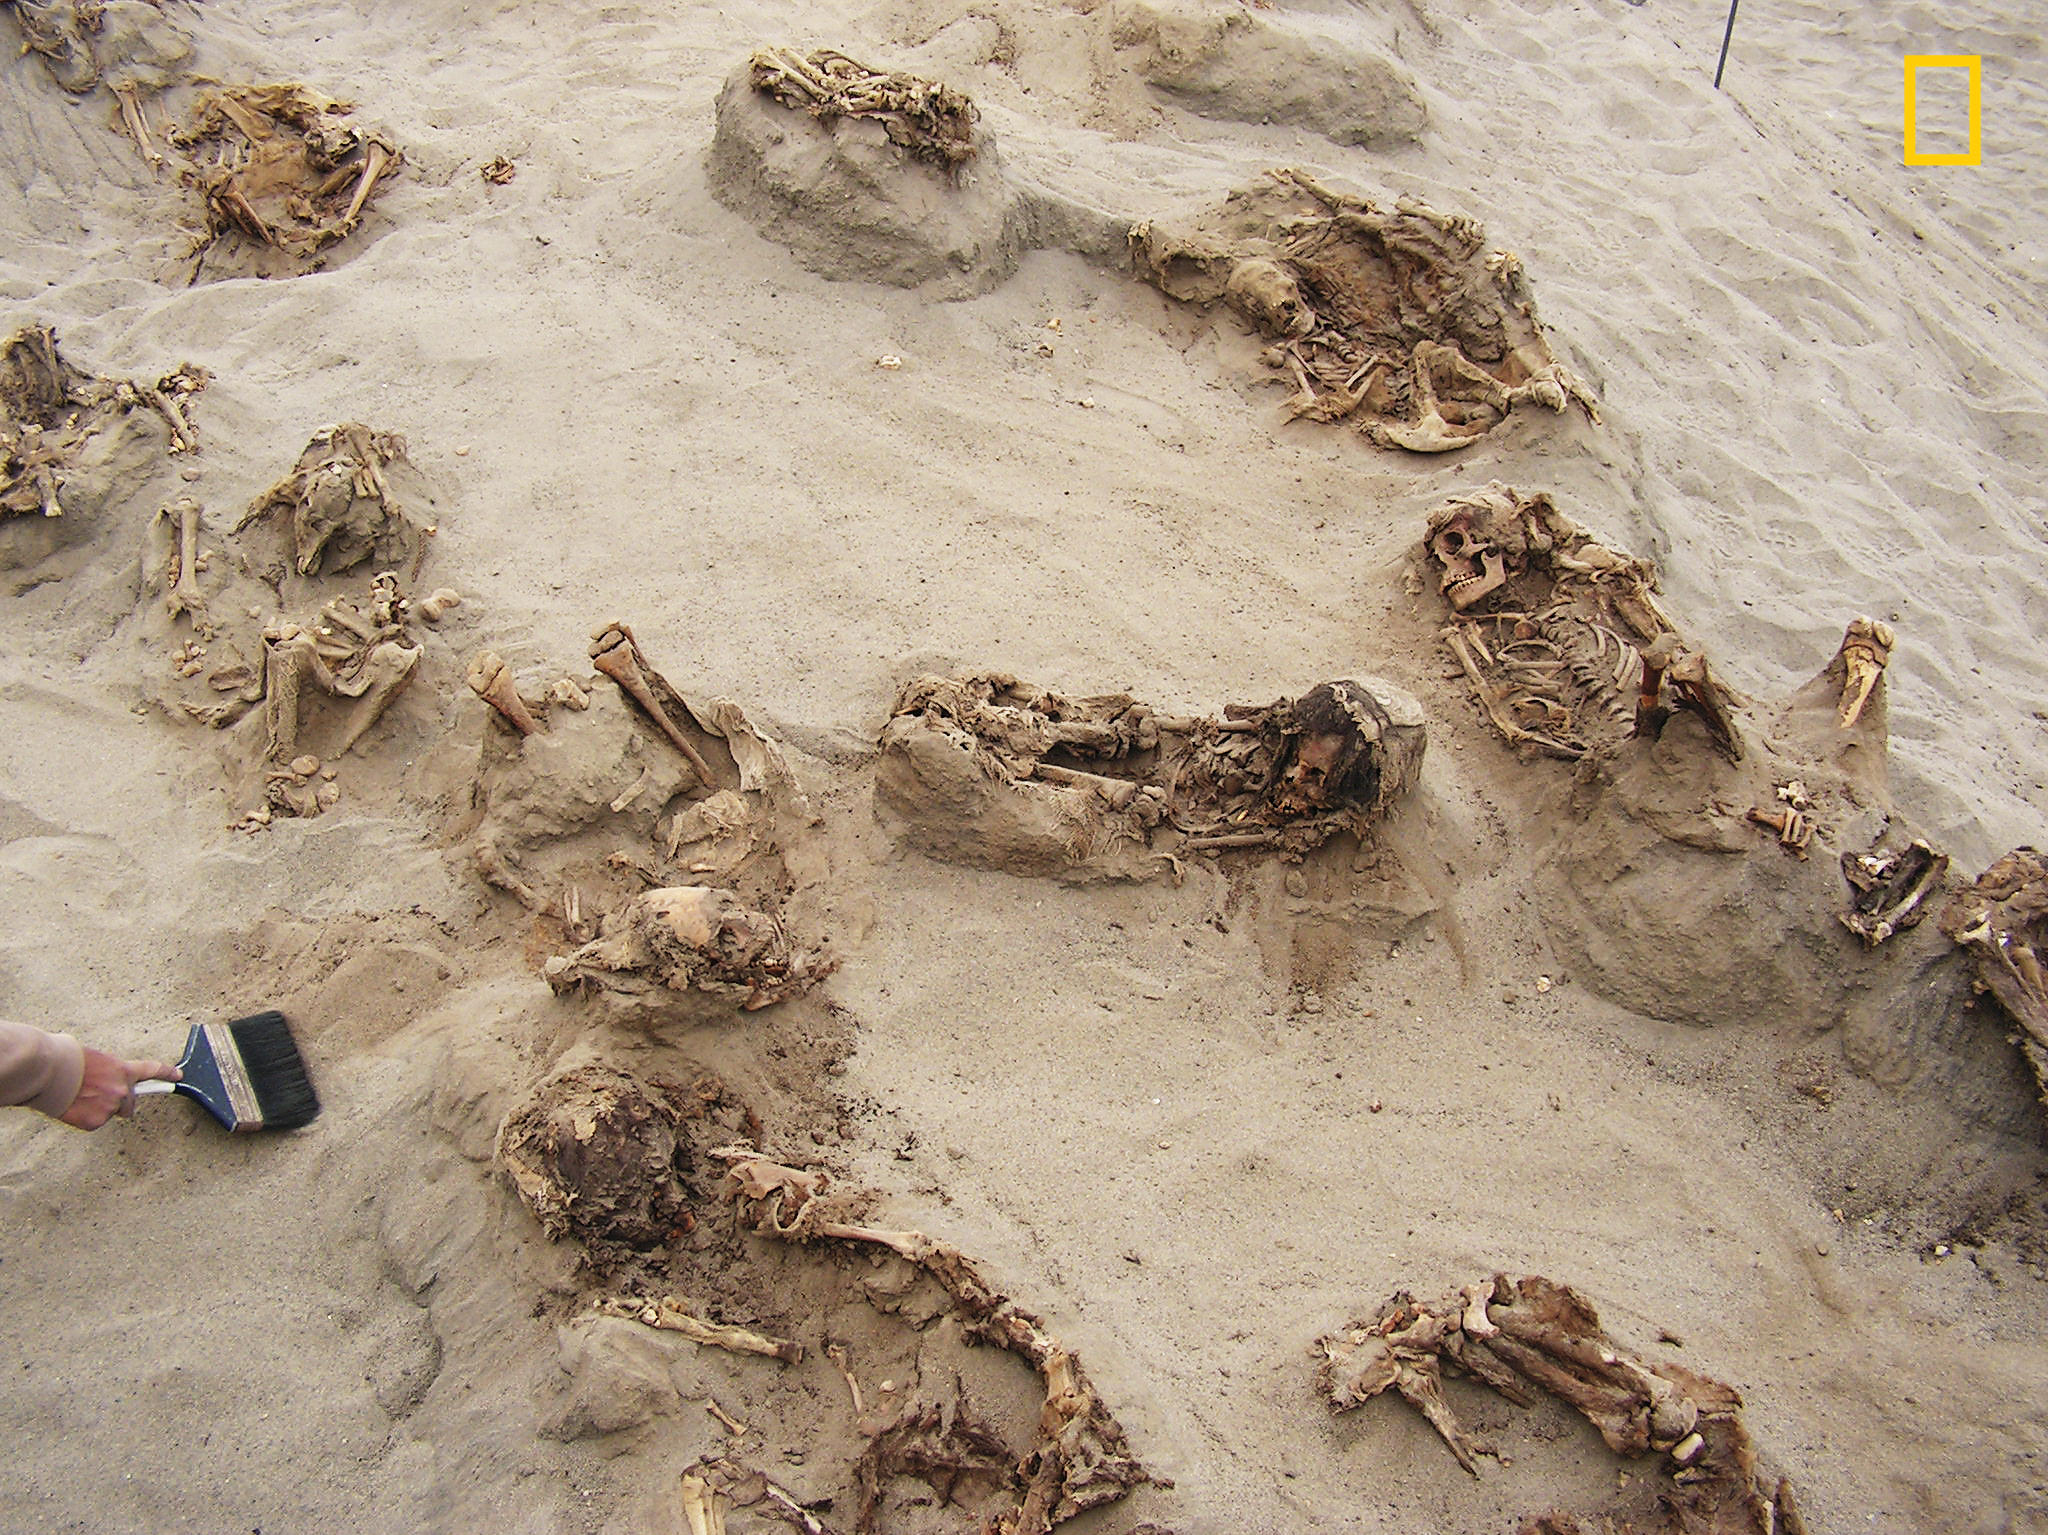 Preserved in dry sand for more than 500 years more than a dozen bodies were found by archaeologists. The researchers reported the